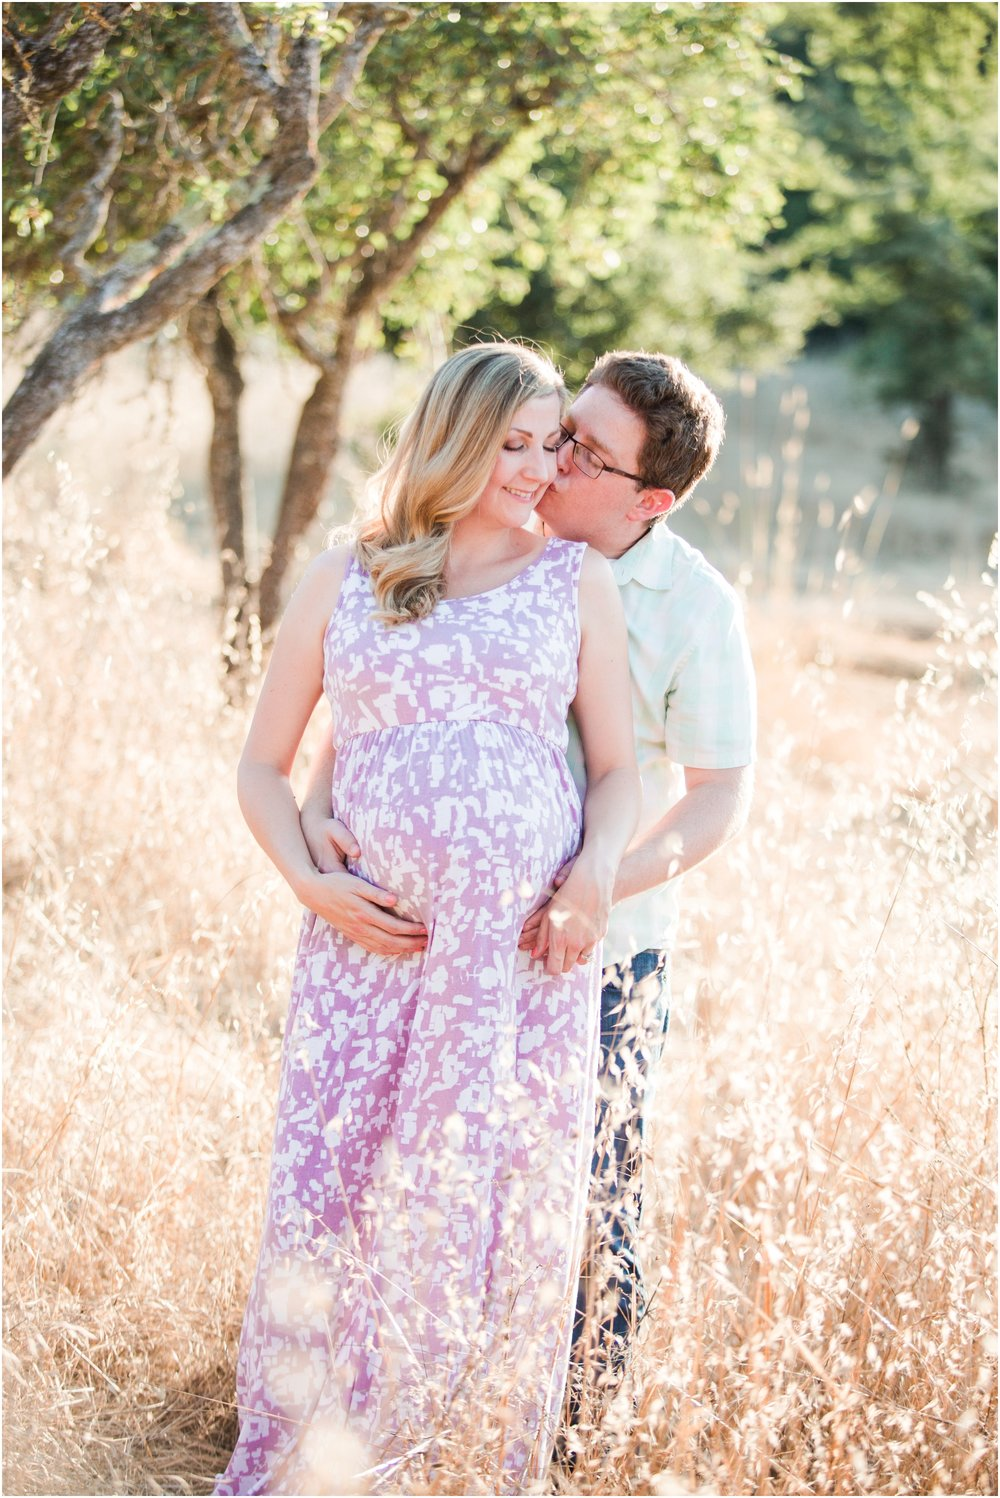 Picchetti Winery maternity pictures by Briana Calderon Photography_2348.jpg